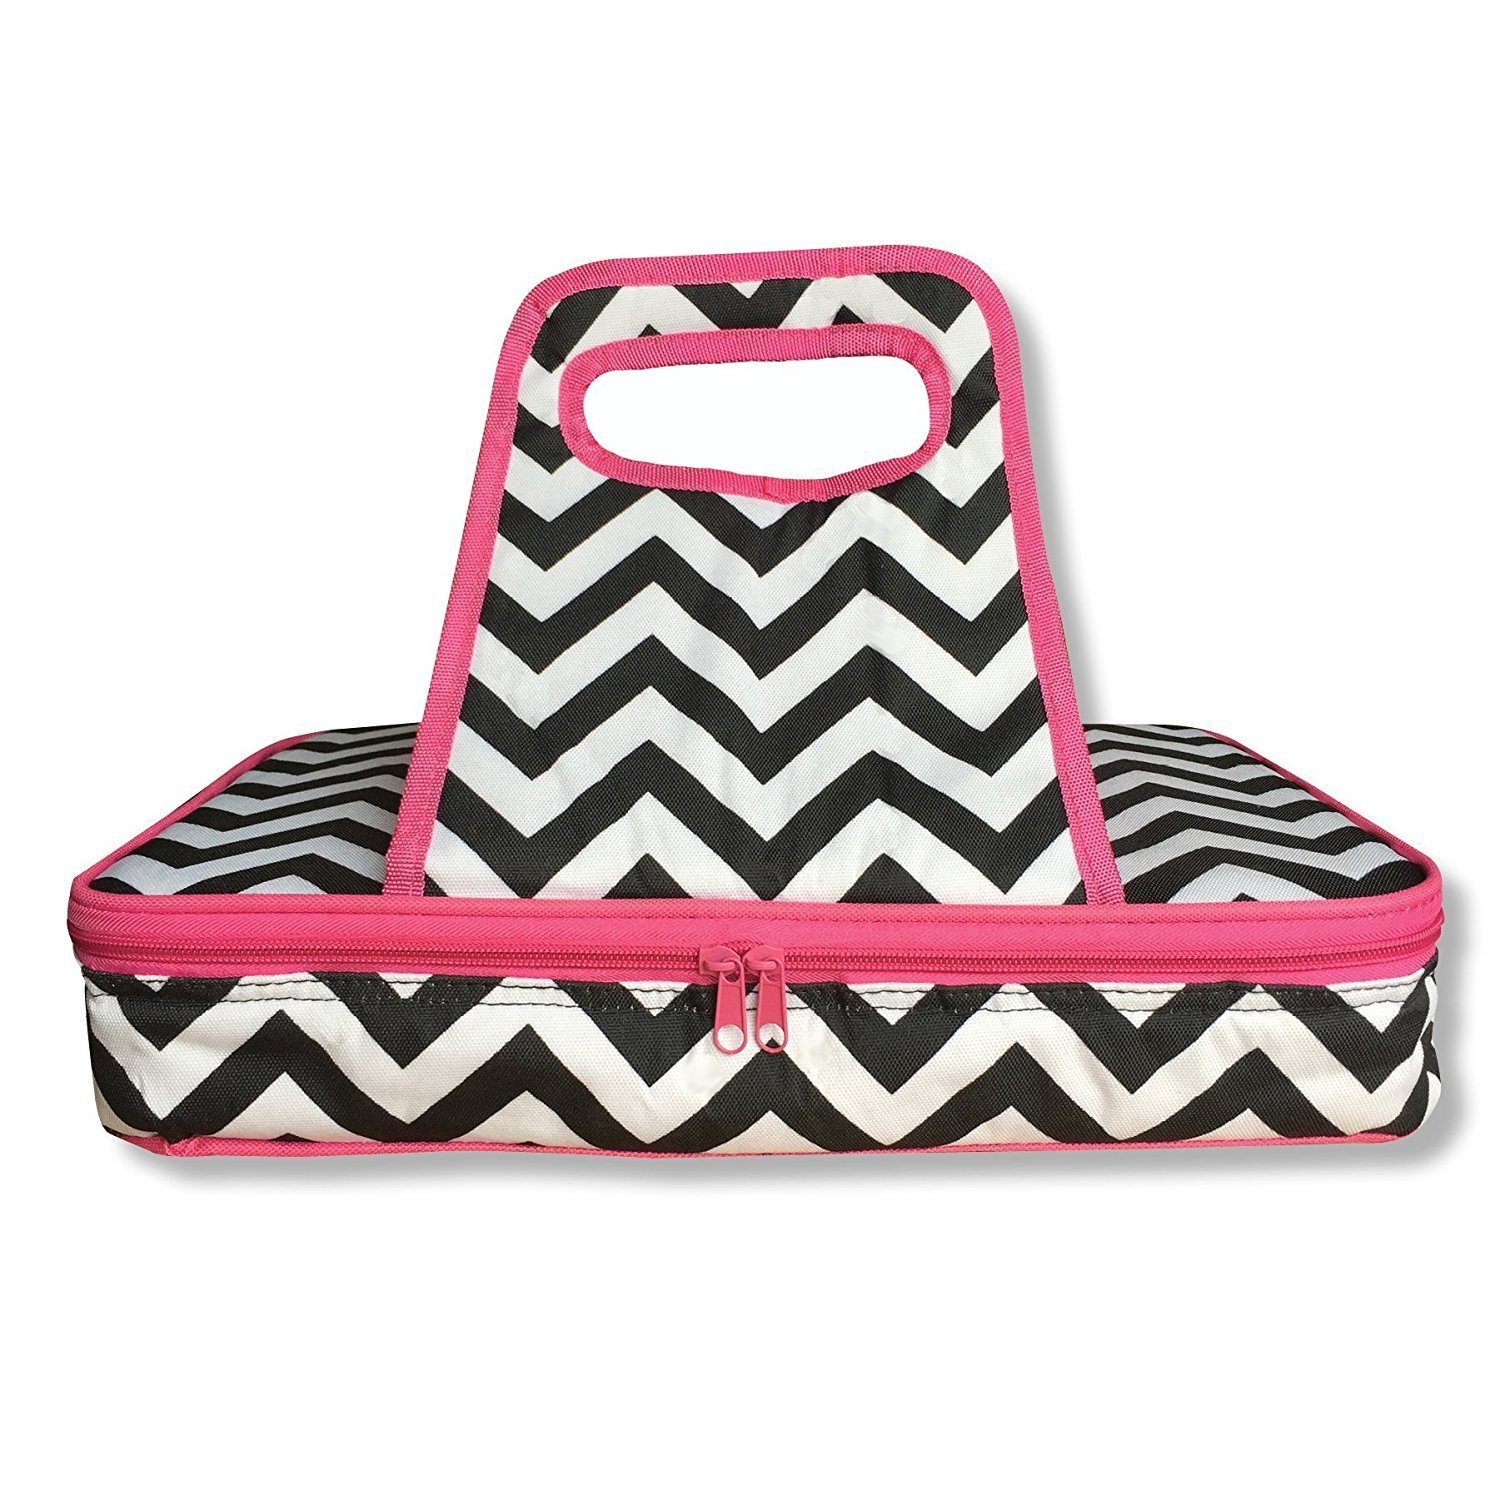 Thermal Insulated 10''x15'' Pink Black and White Chevron Casserole Carrier - Hot or Cold - Double Zipper and Handles by Innisbrook